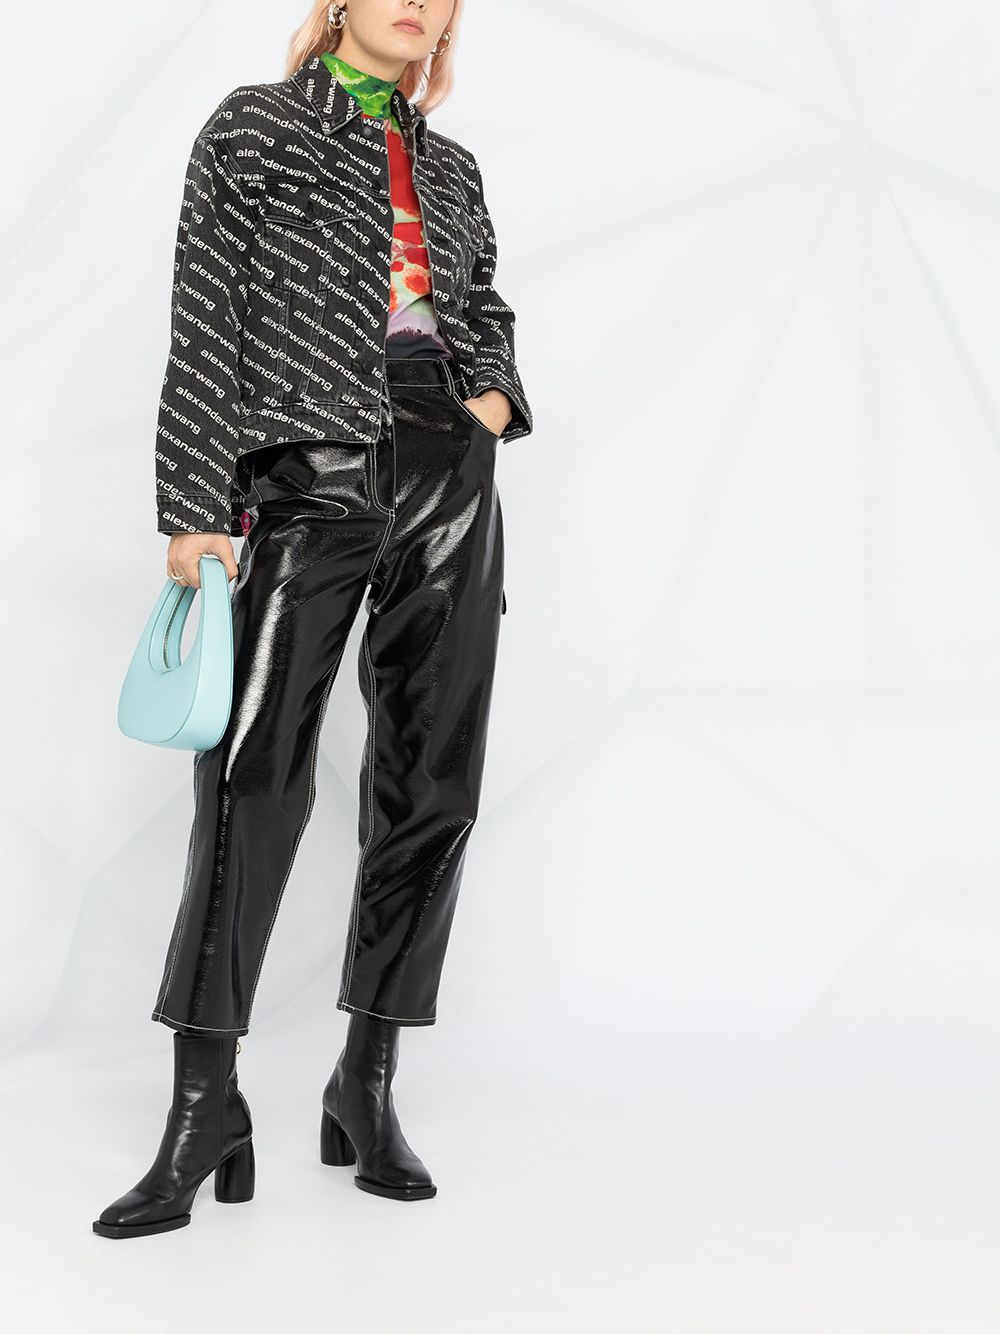 ALEXANDER WANG WOMEN FALLING BACK JACKET